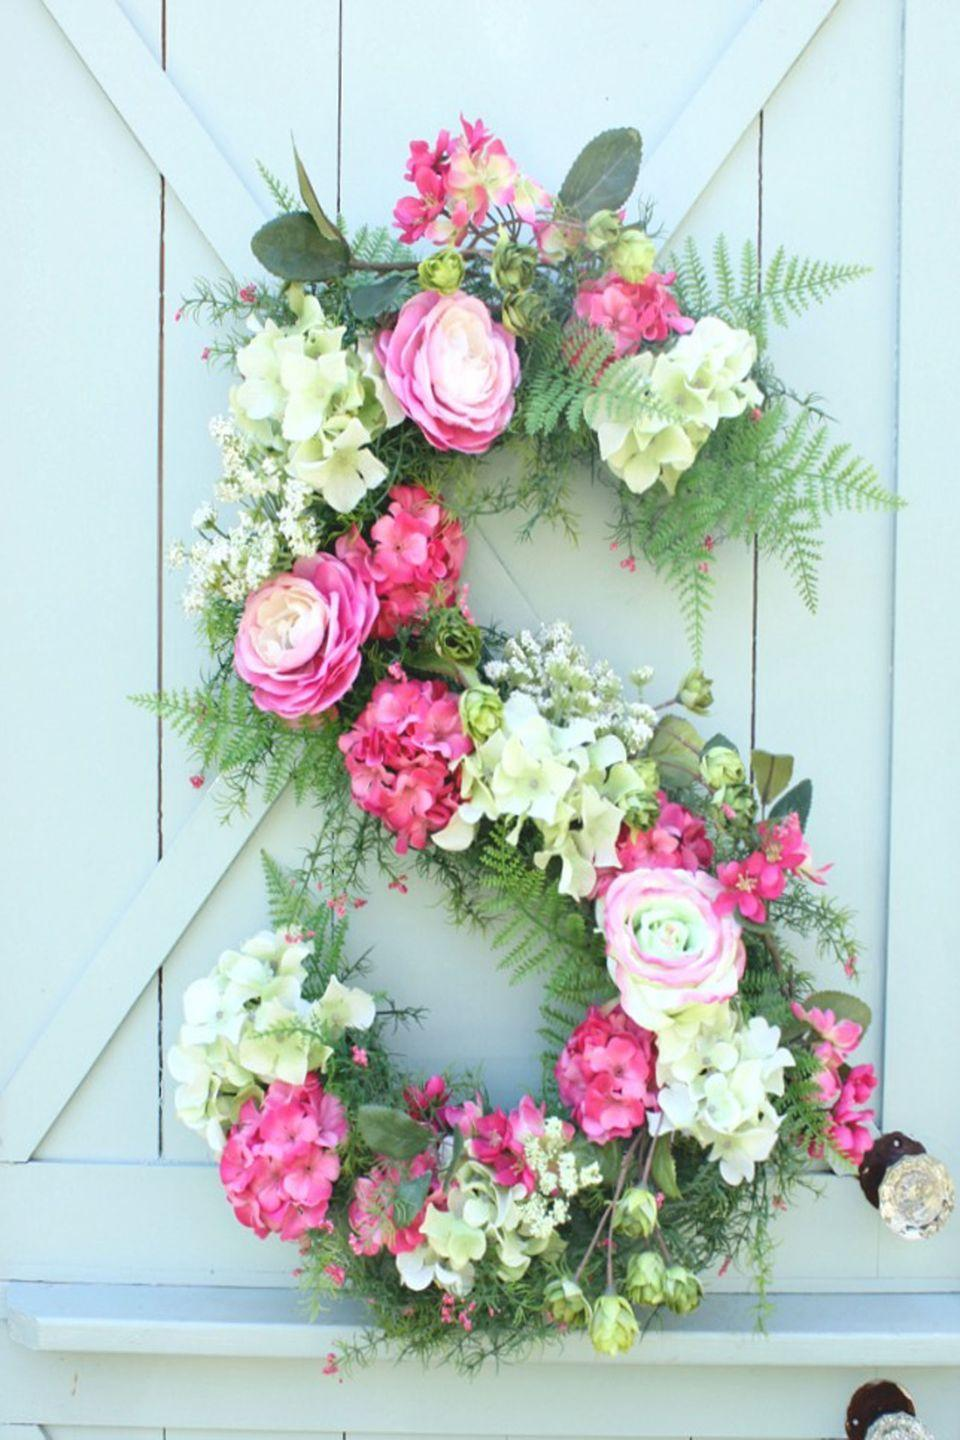 "<p>A monogrammed wreath is a sweet way to show off your family name. Give it as a gift or make one for yourself.</p><p><strong>Get the tutorial at <a href=""http://daisymaebelle.com/floral-monogram/"" rel=""nofollow noopener"" target=""_blank"" data-ylk=""slk:Daisy Mae Bell"" class=""link rapid-noclick-resp"">Daisy Mae Bell</a>.</strong></p><p><a class=""link rapid-noclick-resp"" href=""https://www.amazon.com/Oasis-Floral-Foam-Brick-Maxlife/dp/B0018N71RI?tag=syn-yahoo-20&ascsubtag=%5Bartid%7C10050.g.4395%5Bsrc%7Cyahoo-us"" rel=""nofollow noopener"" target=""_blank"" data-ylk=""slk:SHOP FLORAL FOAM"">SHOP FLORAL FOAM</a> </p>"